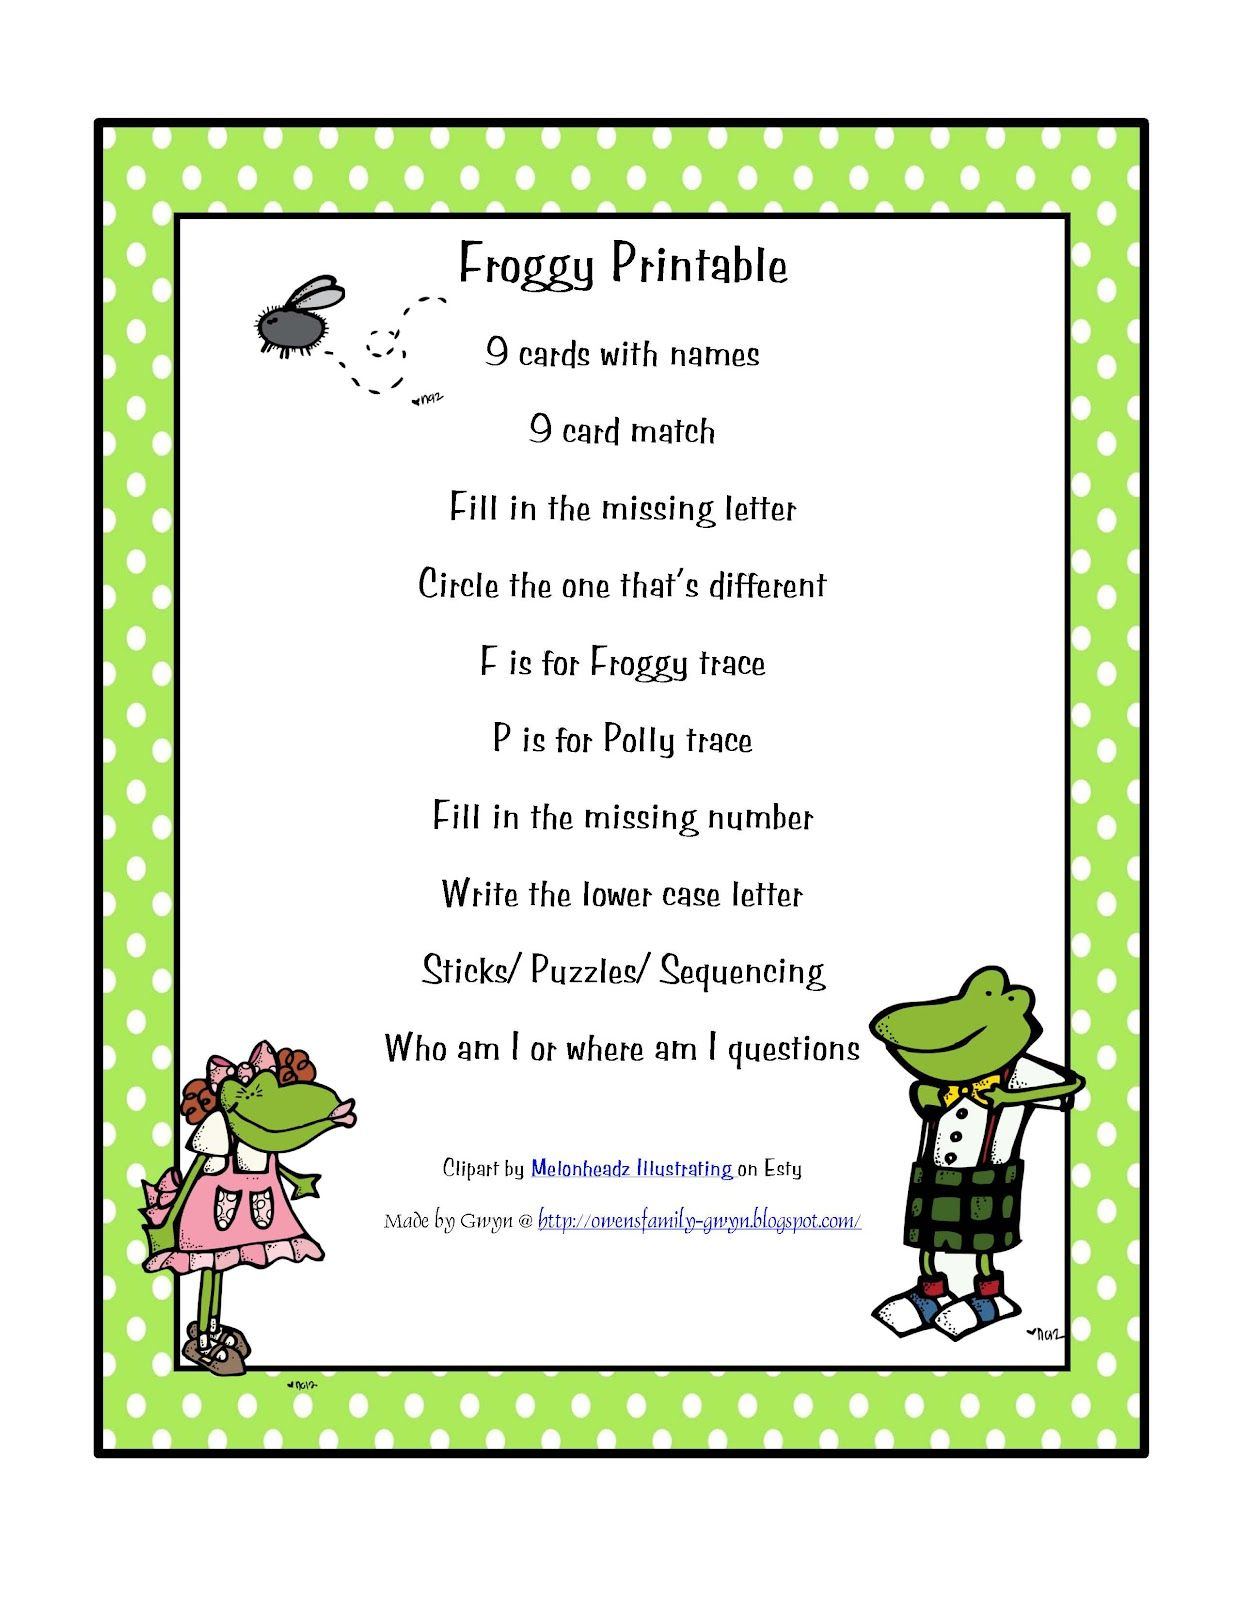 Froggy Printable | Frogs | Pinterest | Buch und PS